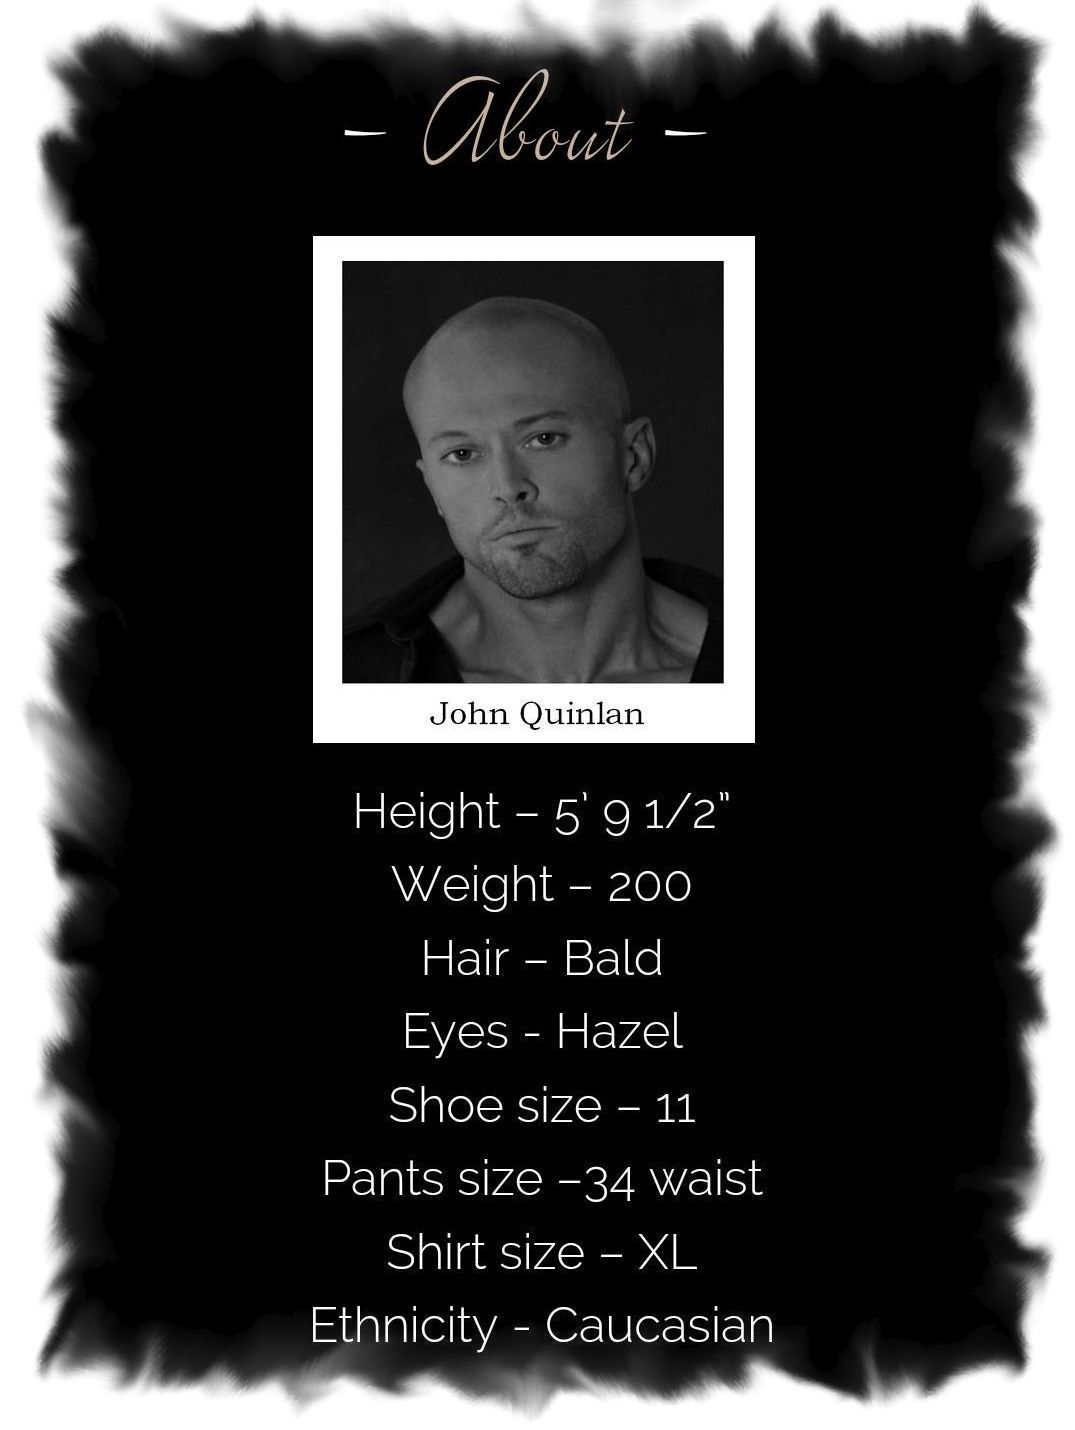 Actor & Model John Joseph Quinlan Official Site by Ashton Bingham About Bio #JohnQuinlan